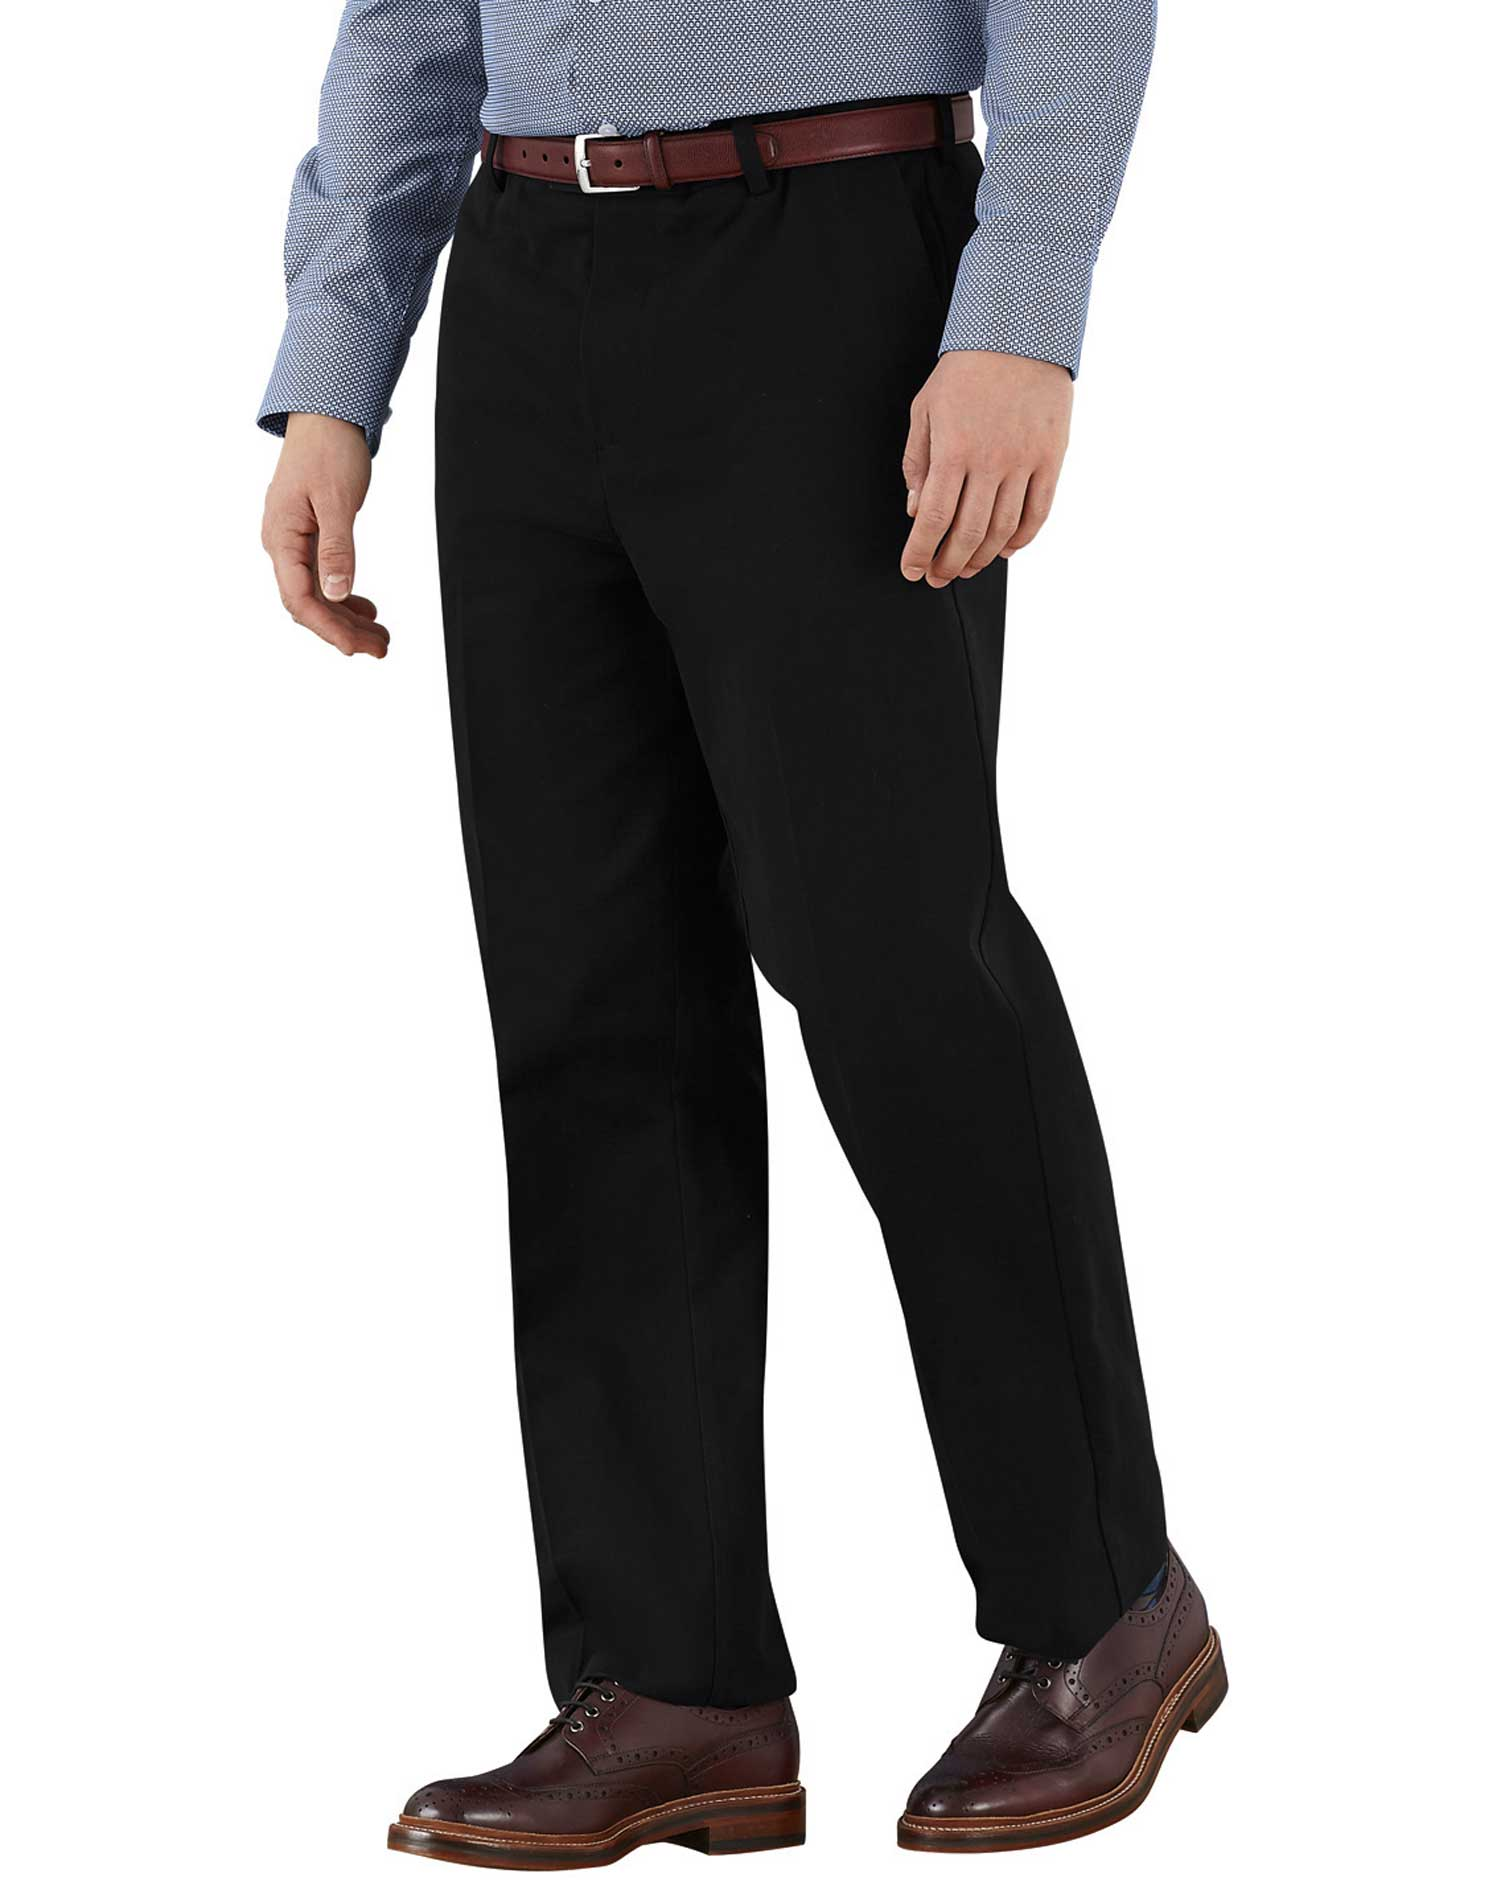 Black Classic Fit Flat Front Non-Iron Cotton Chino Trousers Size W36 L38 by Charles Tyrwhitt